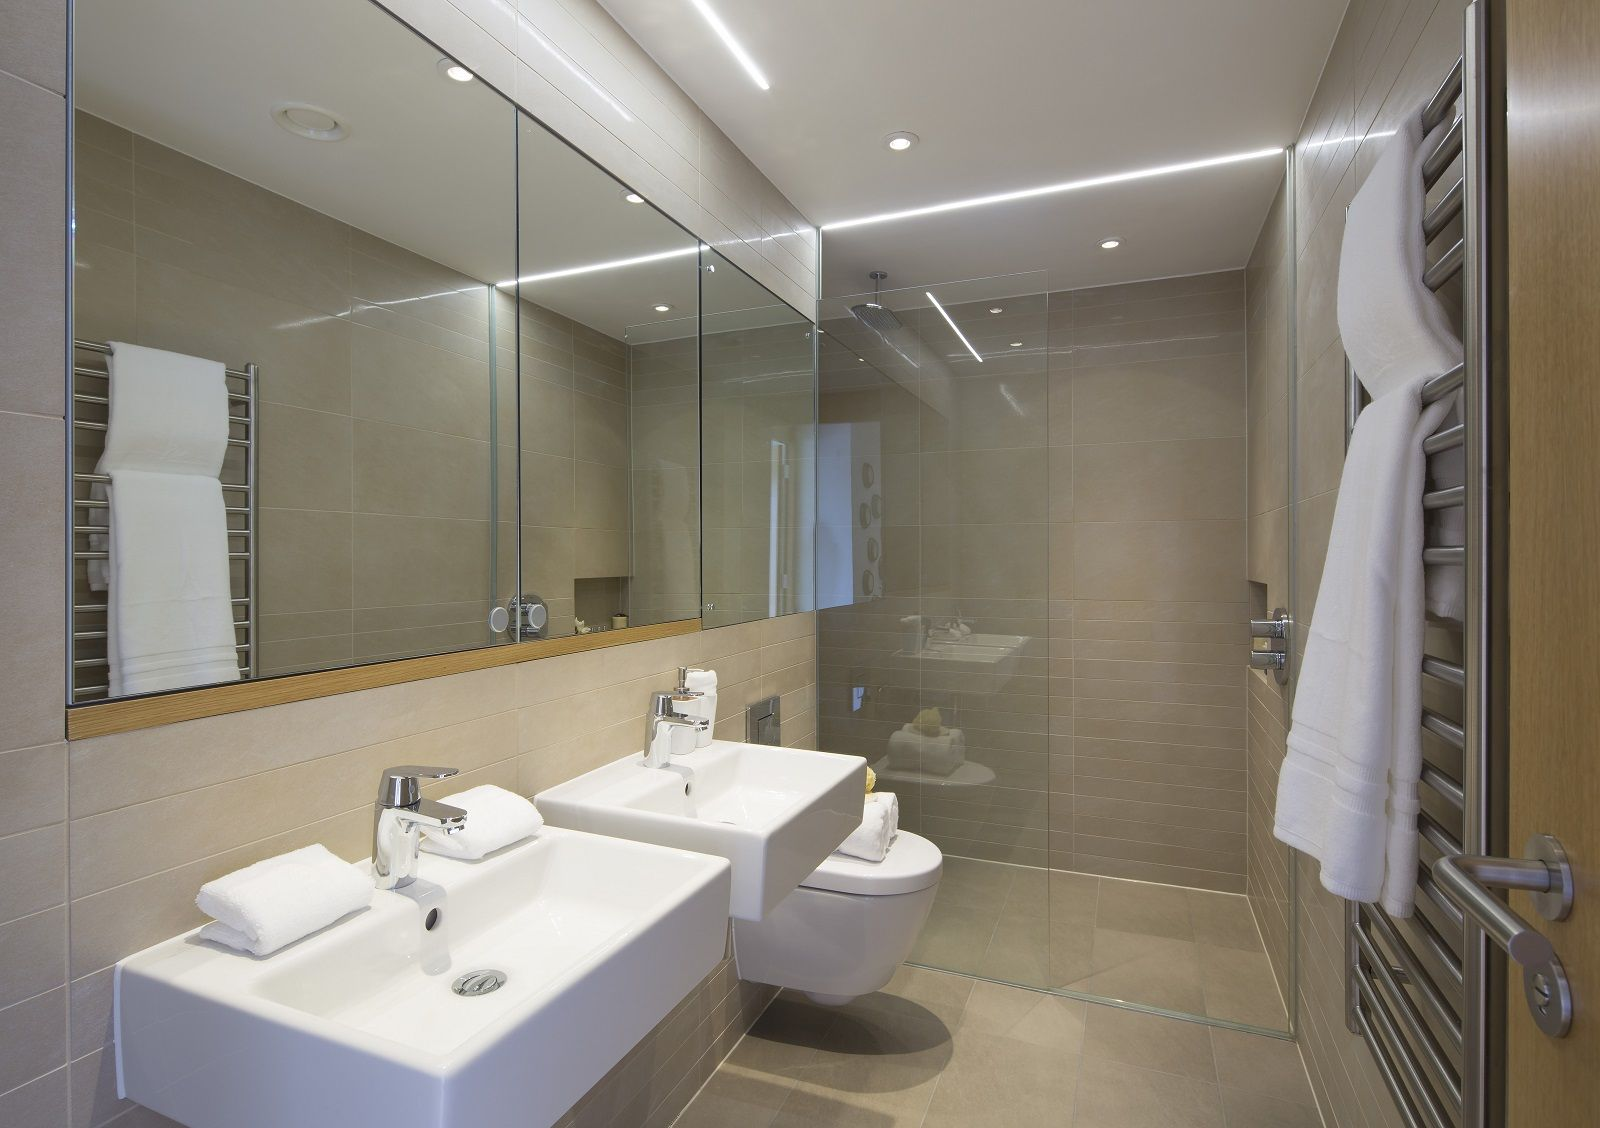 Argyll place taylor wimpey central london bathroom for Townhouse bathroom ideas